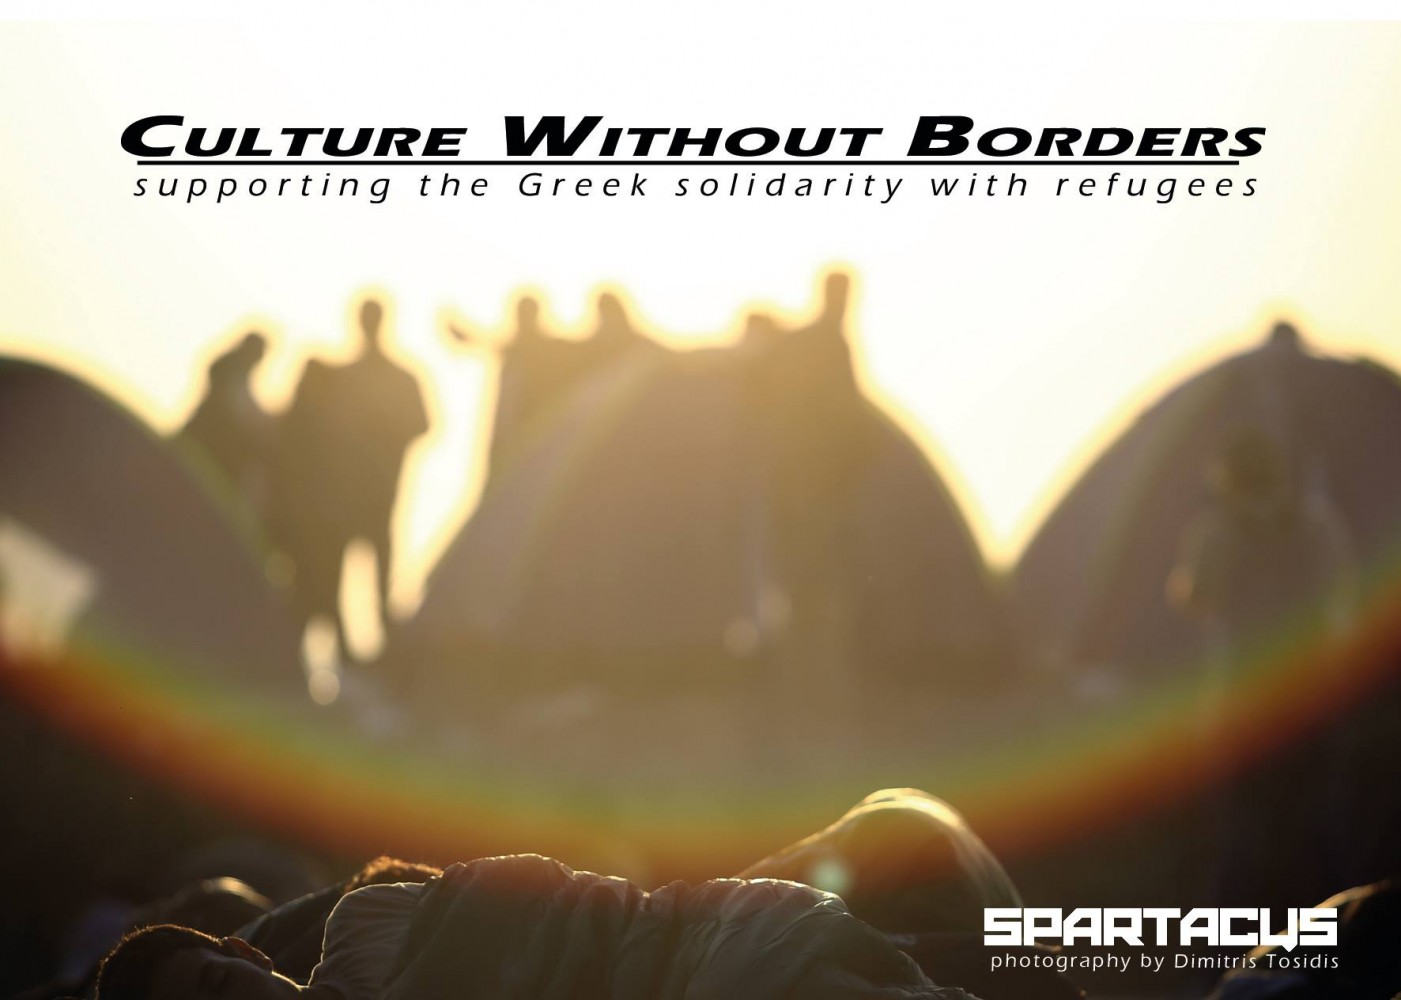 CULTURE WITHOUT BORDERS